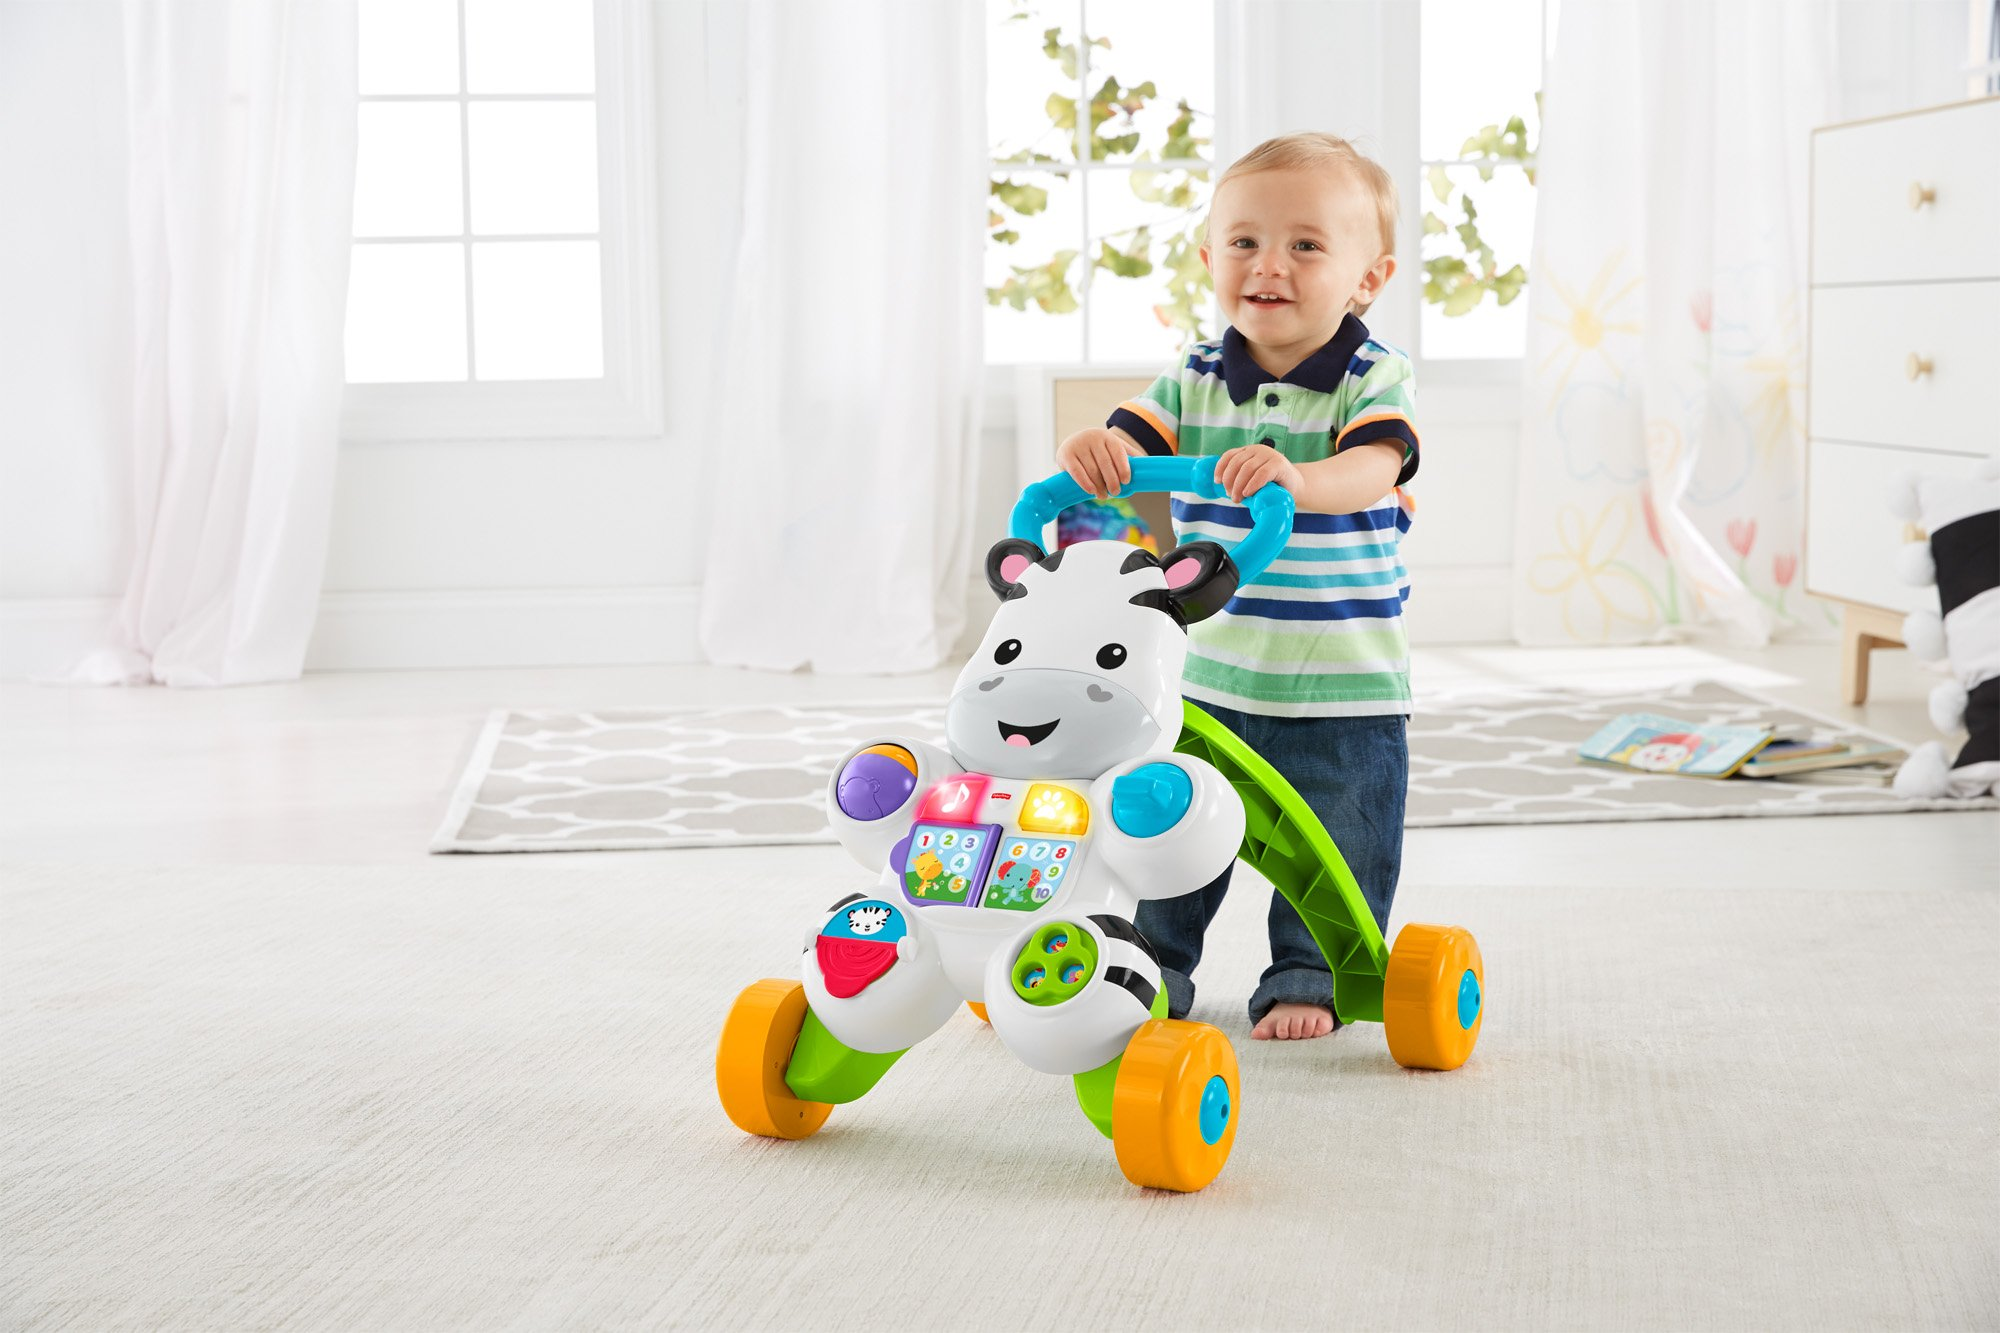 Toddler ABC Learning Standing Walking Walker Toys Activities Push